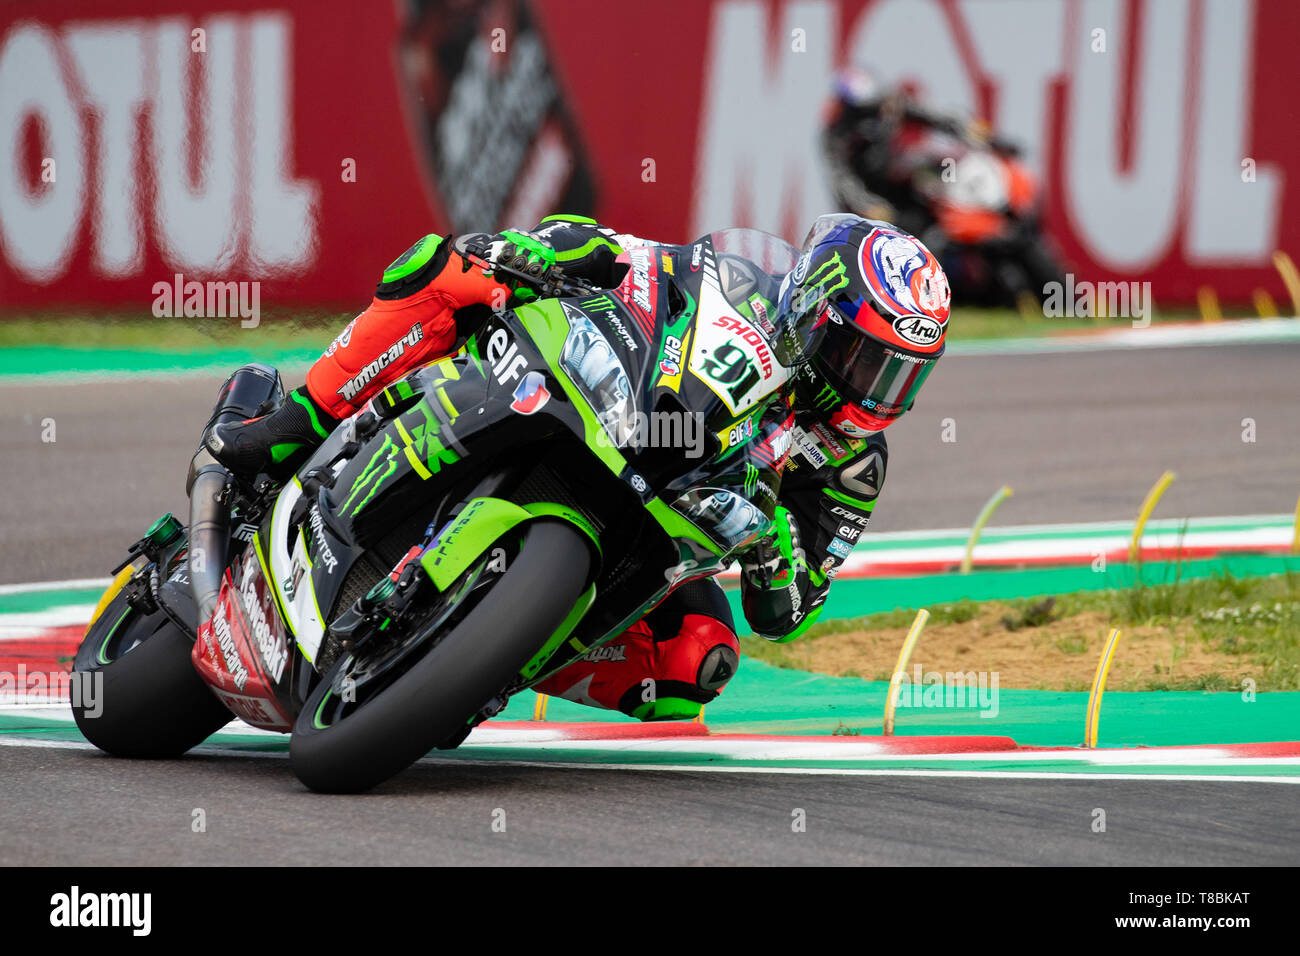 WorldSBK Superbike championship weekend in the italian circuit of Imola Dino and Enzo Ferrari Stock Photo